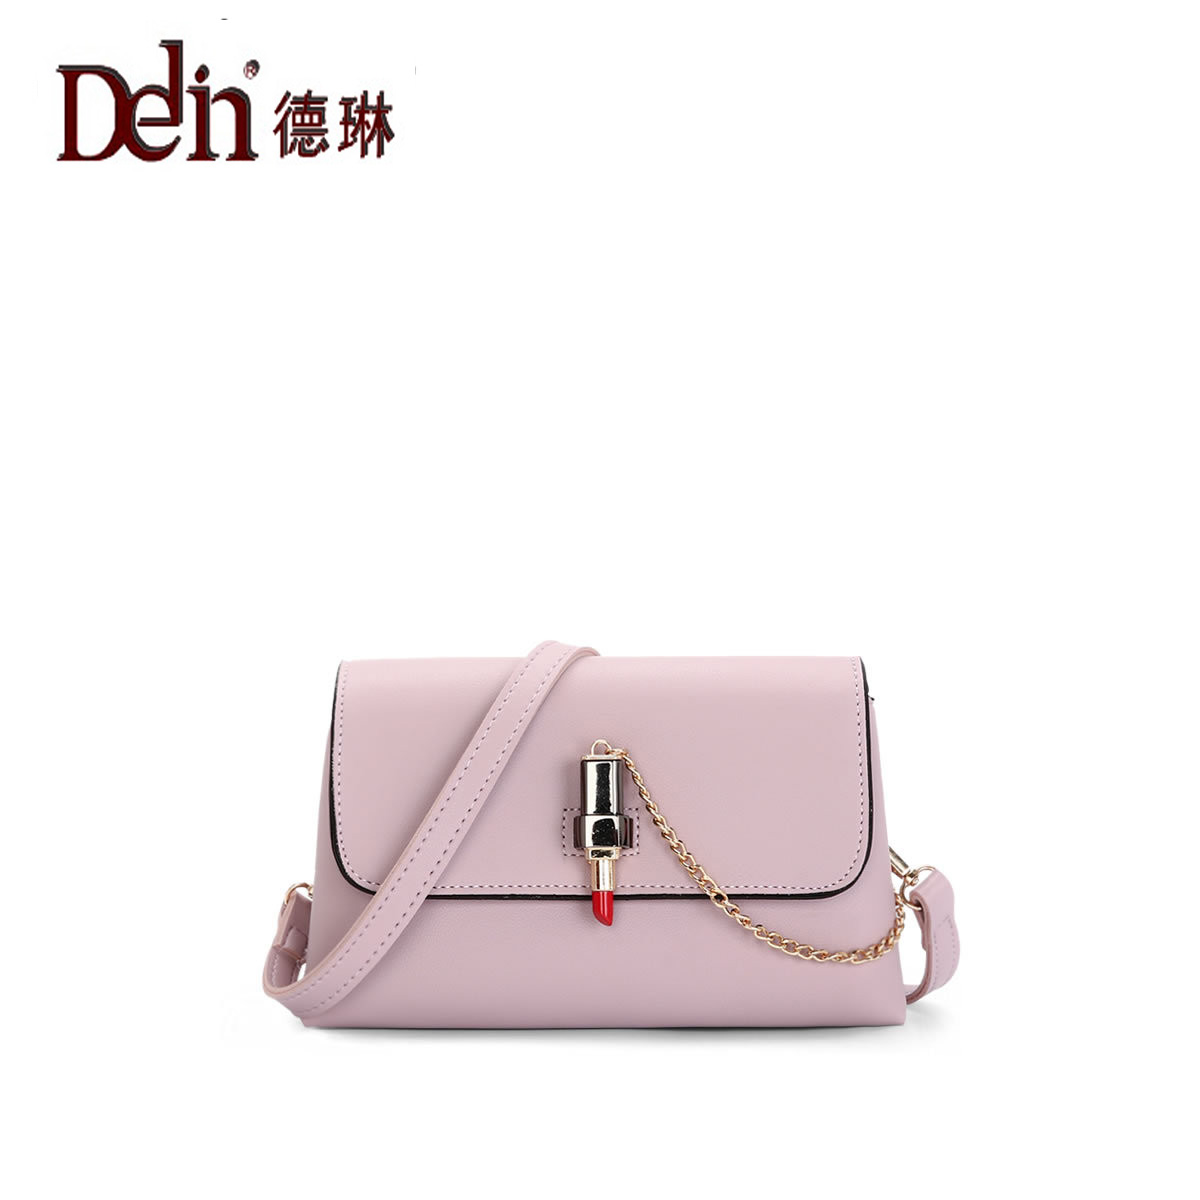 DELIN 2017 new Korean Chain Handbag diagonal bag Crossbody Bag ladies fashion lipstick single shoulder bag 943 perfect selling 2016 new korean chain diagonal fashion handbags handbag crossbody bag lady all match free shipping